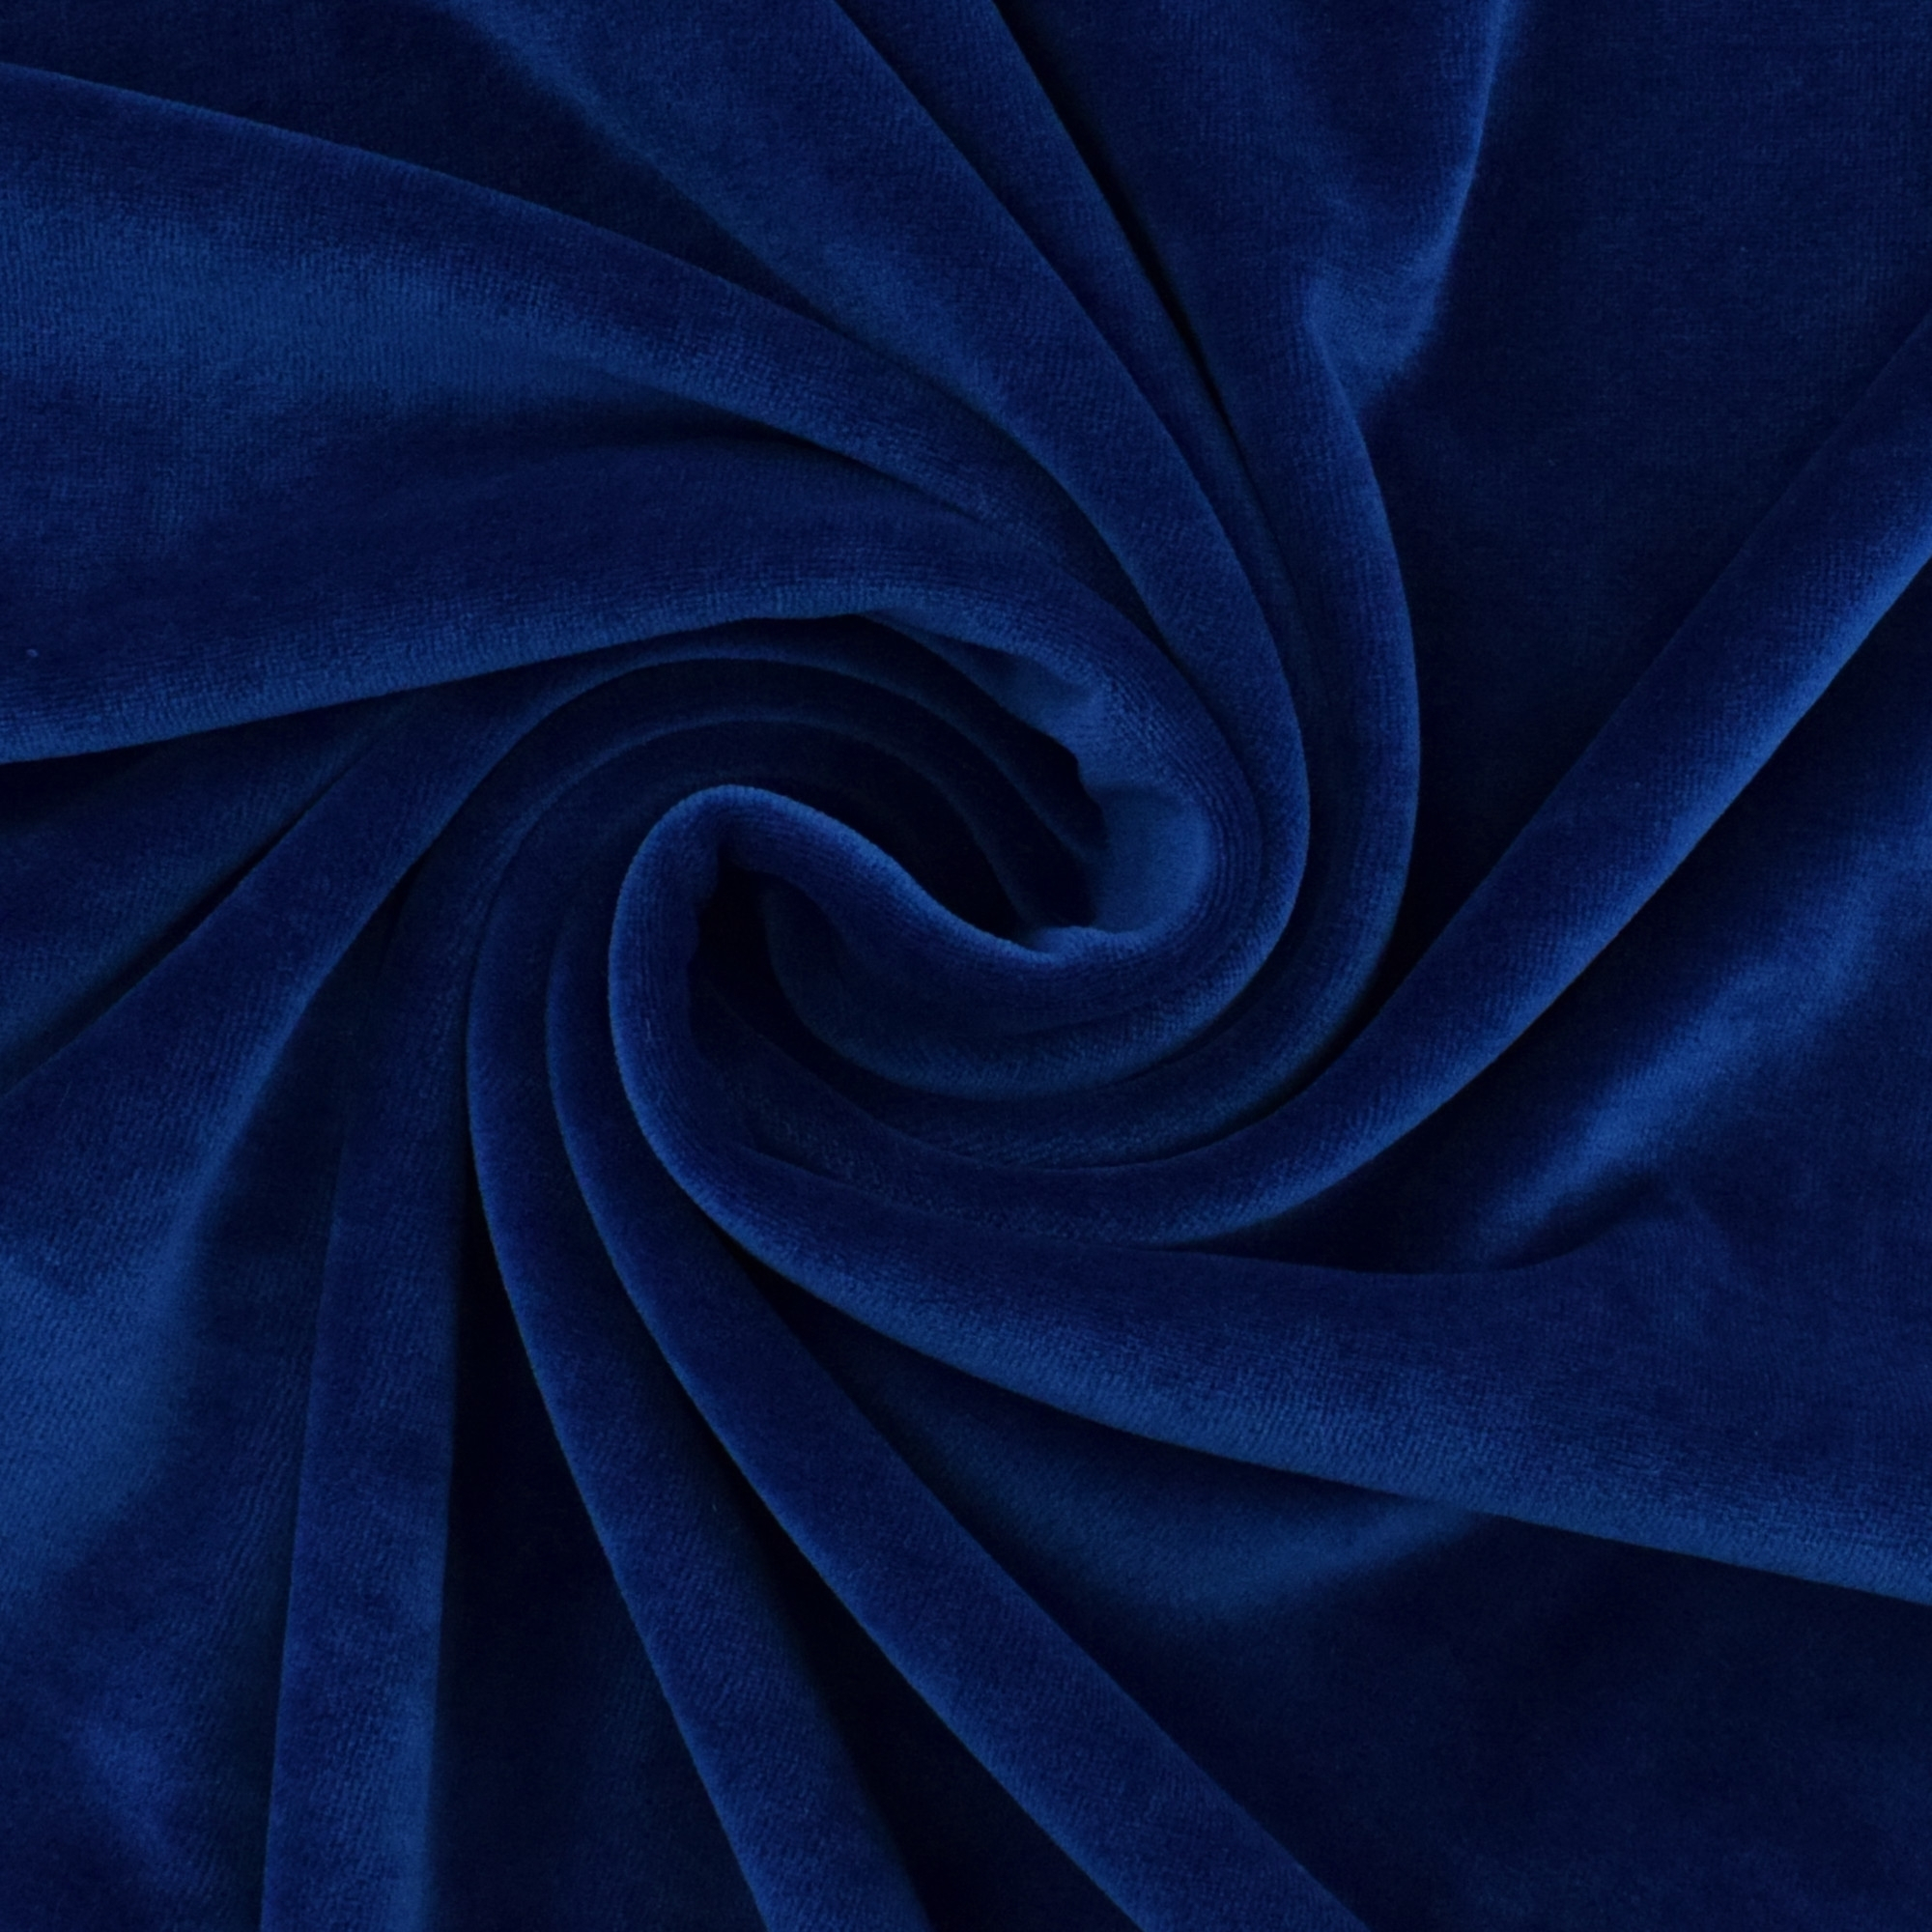 Nickistoff royalblau | 100.126-5027 | blau